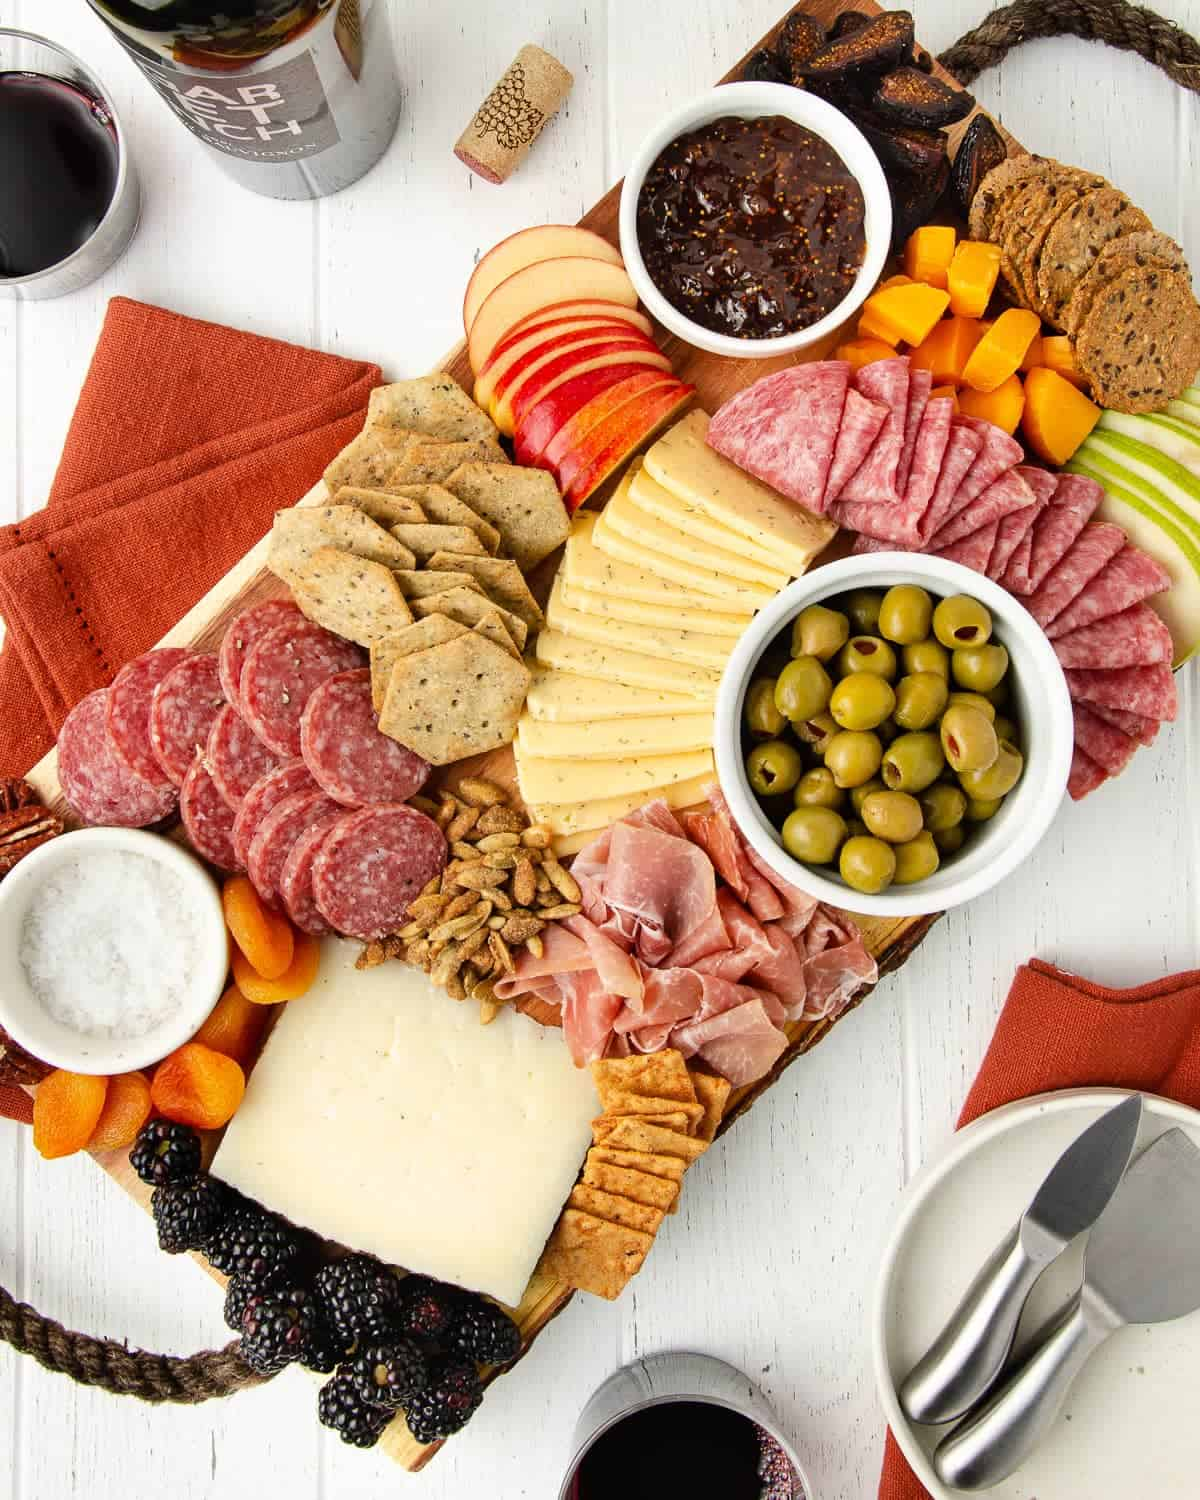 a gluten free charcuterie board sit-in on a white wooden table with orange linens and a plate with cheese knives sitting to the bottom with a bottle of red wine and two glasses filled with wine to the top and bottom of the image